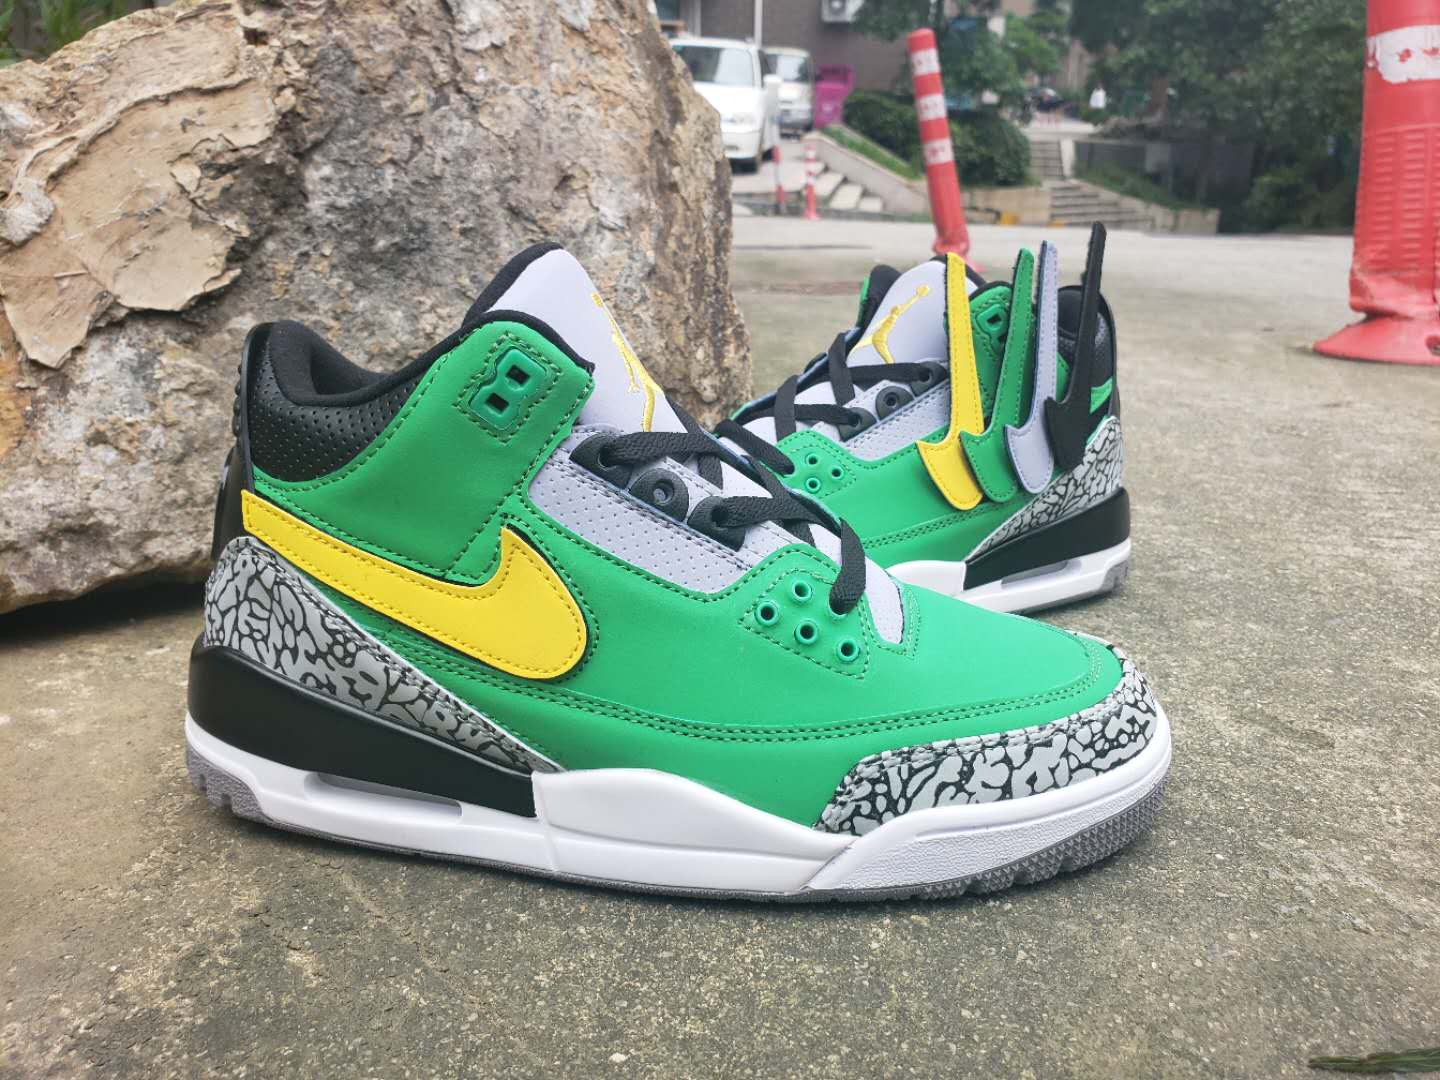 Air Jordan 3 Retro Green Black Yellow Cement Grey Shoes